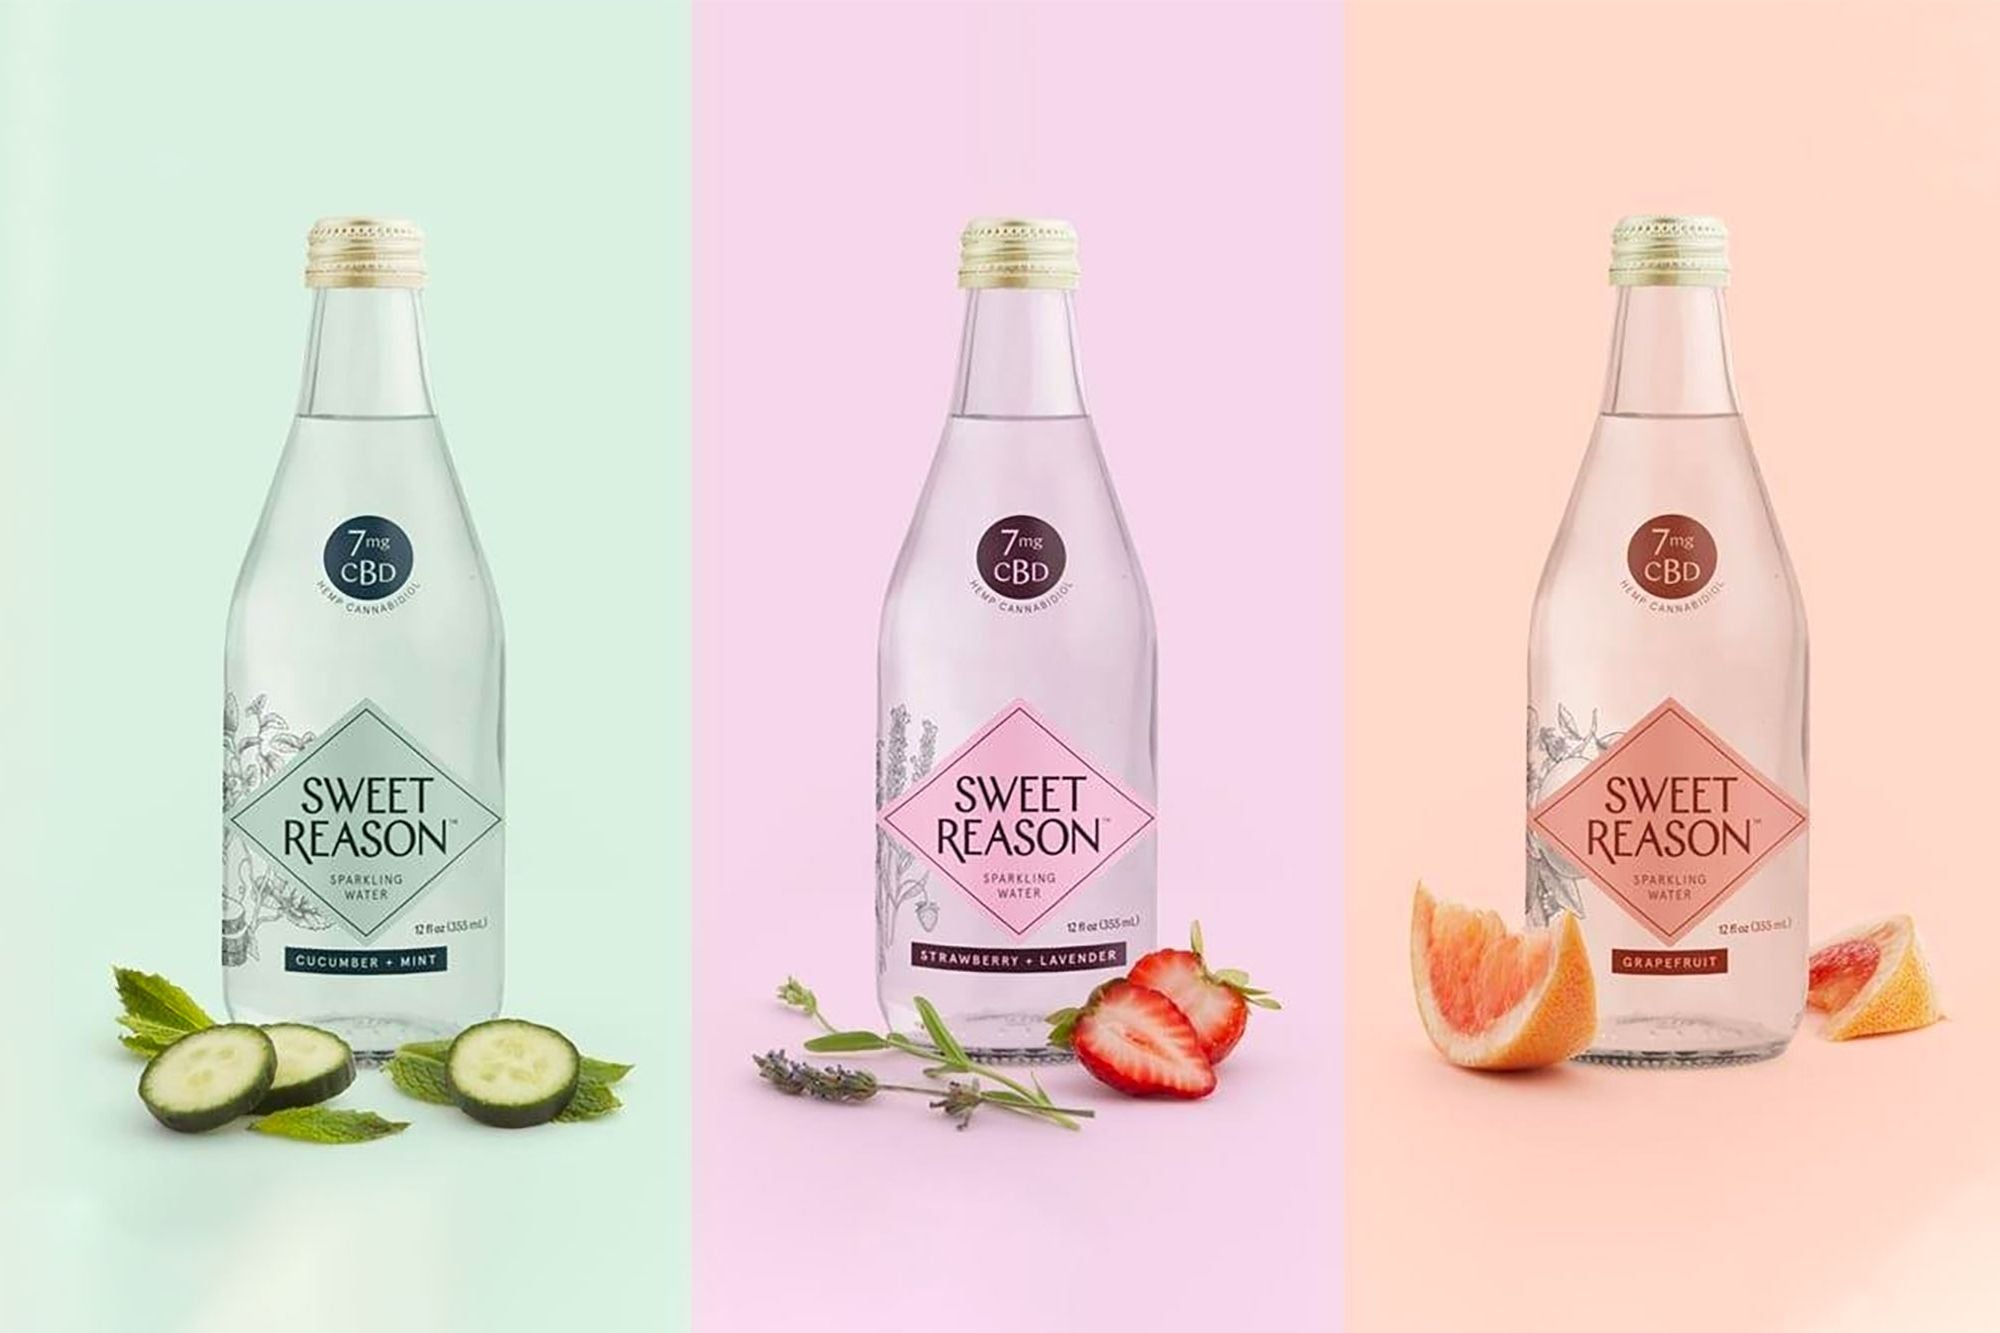 Hilary McCain Gives A 'Sweet Reason' To Try Her CBD-Infused, All-Natural Sparkling Waters